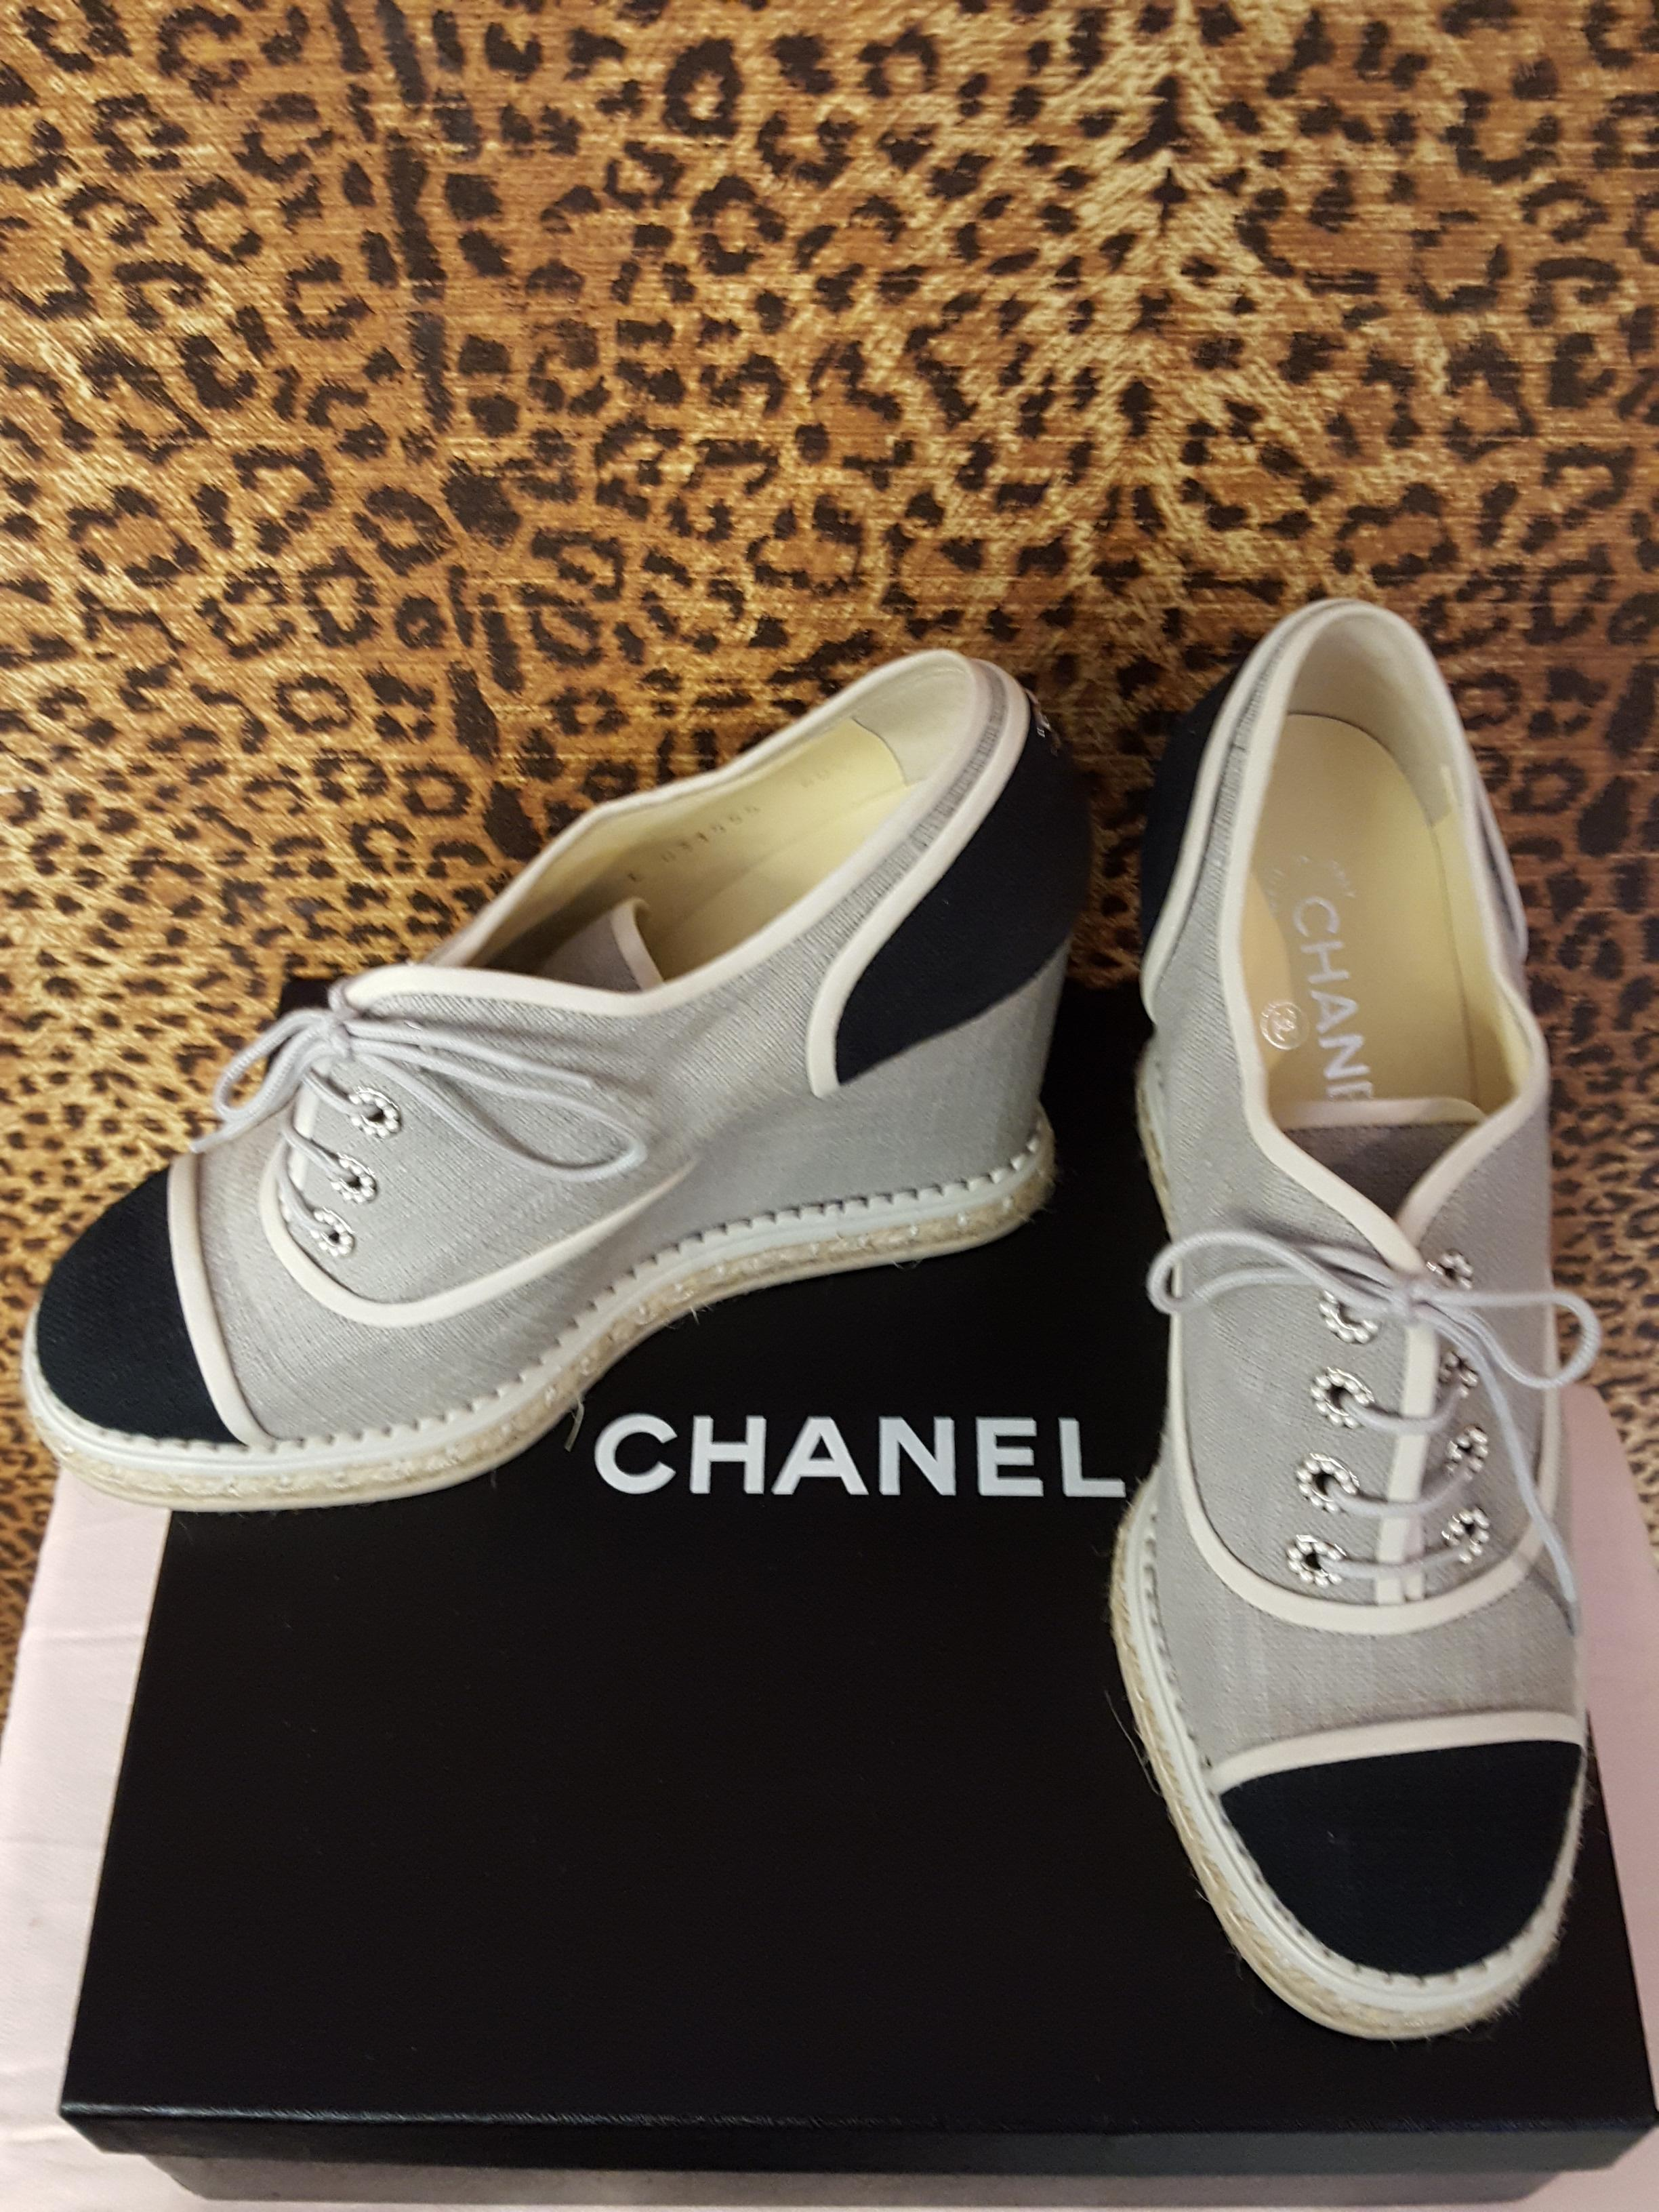 Chanel~ Black & White, Shoes Price: $741.06